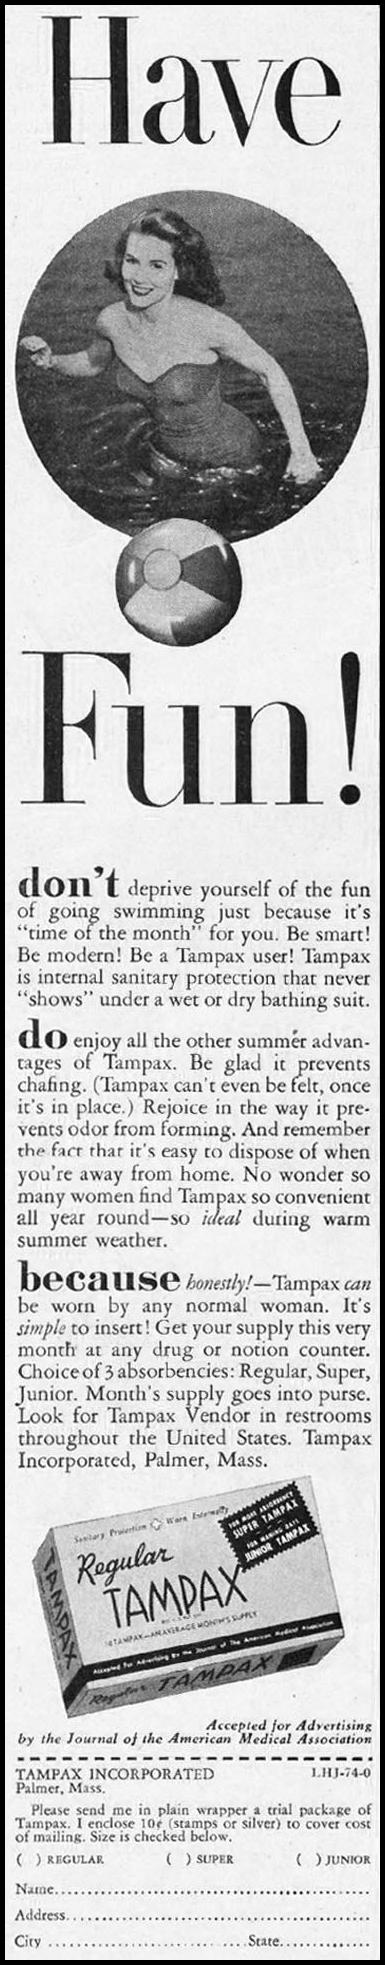 TAMPAX LADIES' HOME JOURNAL 07/01/1954 p. 88